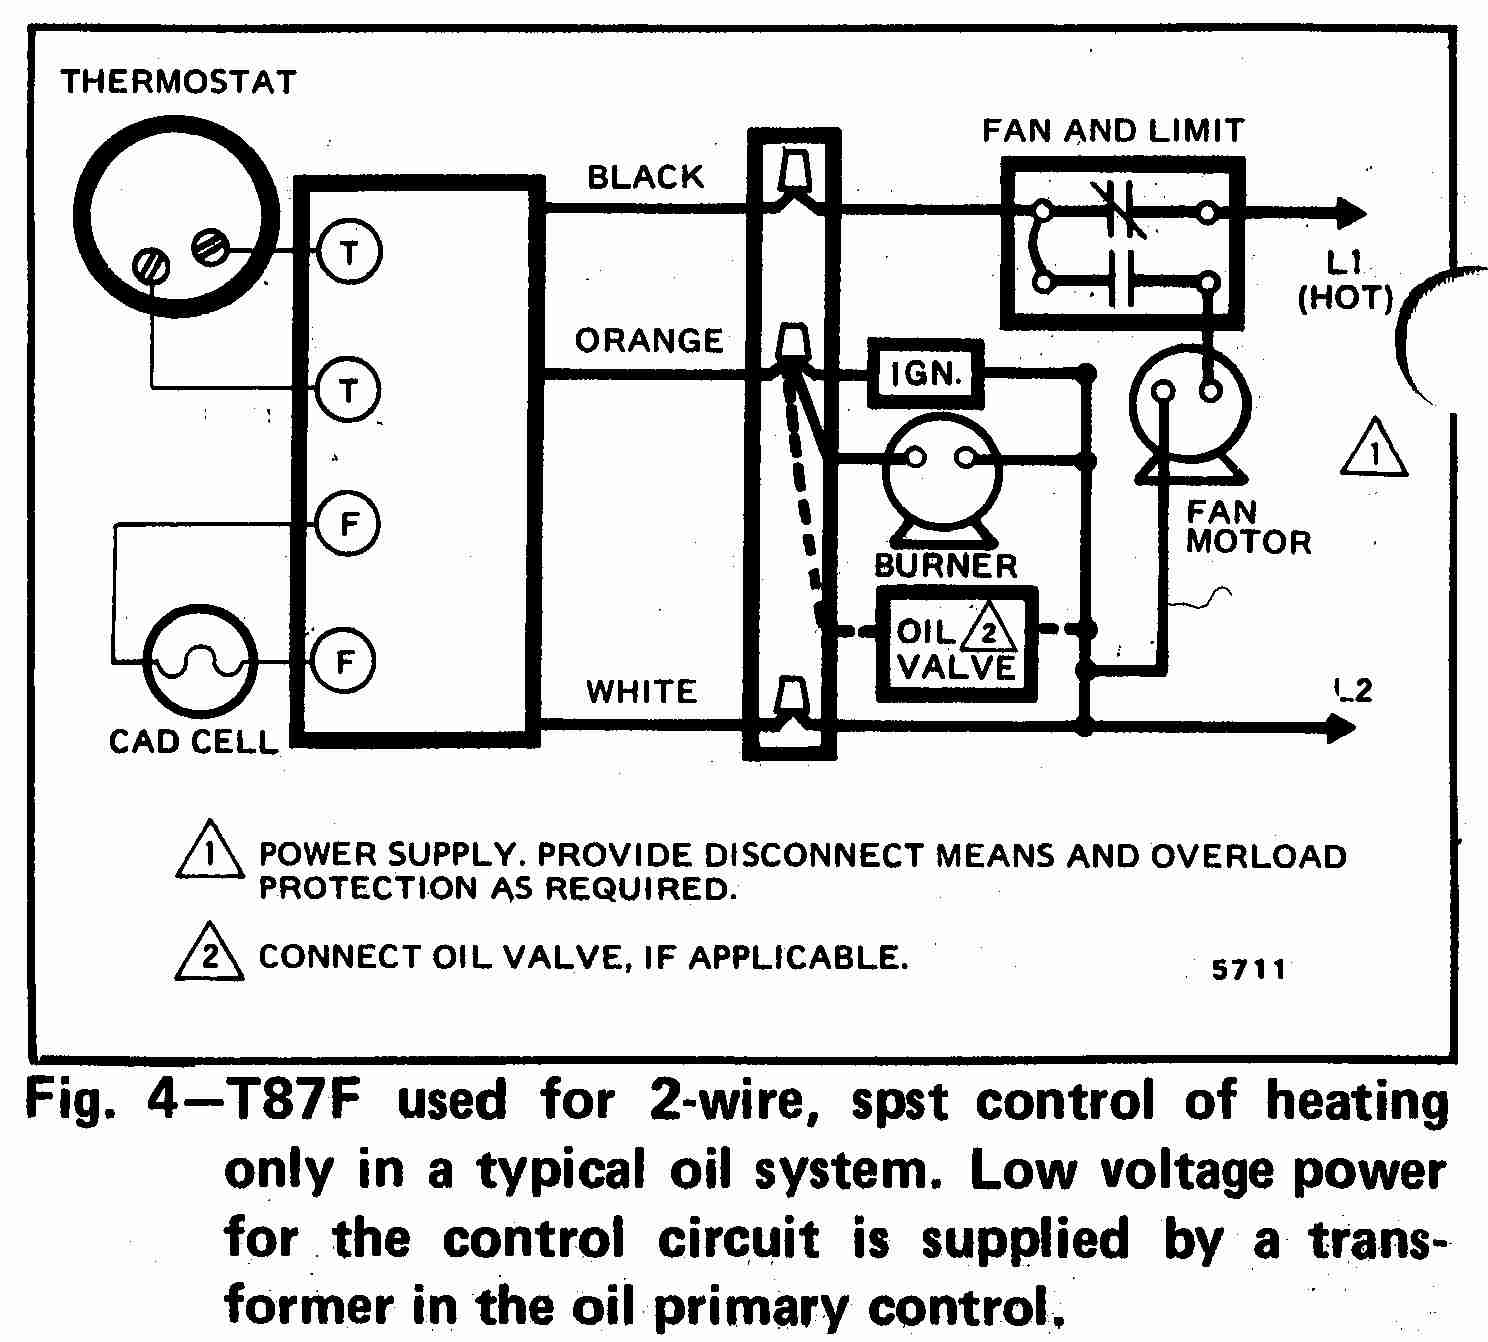 TT_T87F_0002_2W_DJF room thermostat wiring diagrams for hvac systems honeywell thermostat wiring diagram at arjmand.co